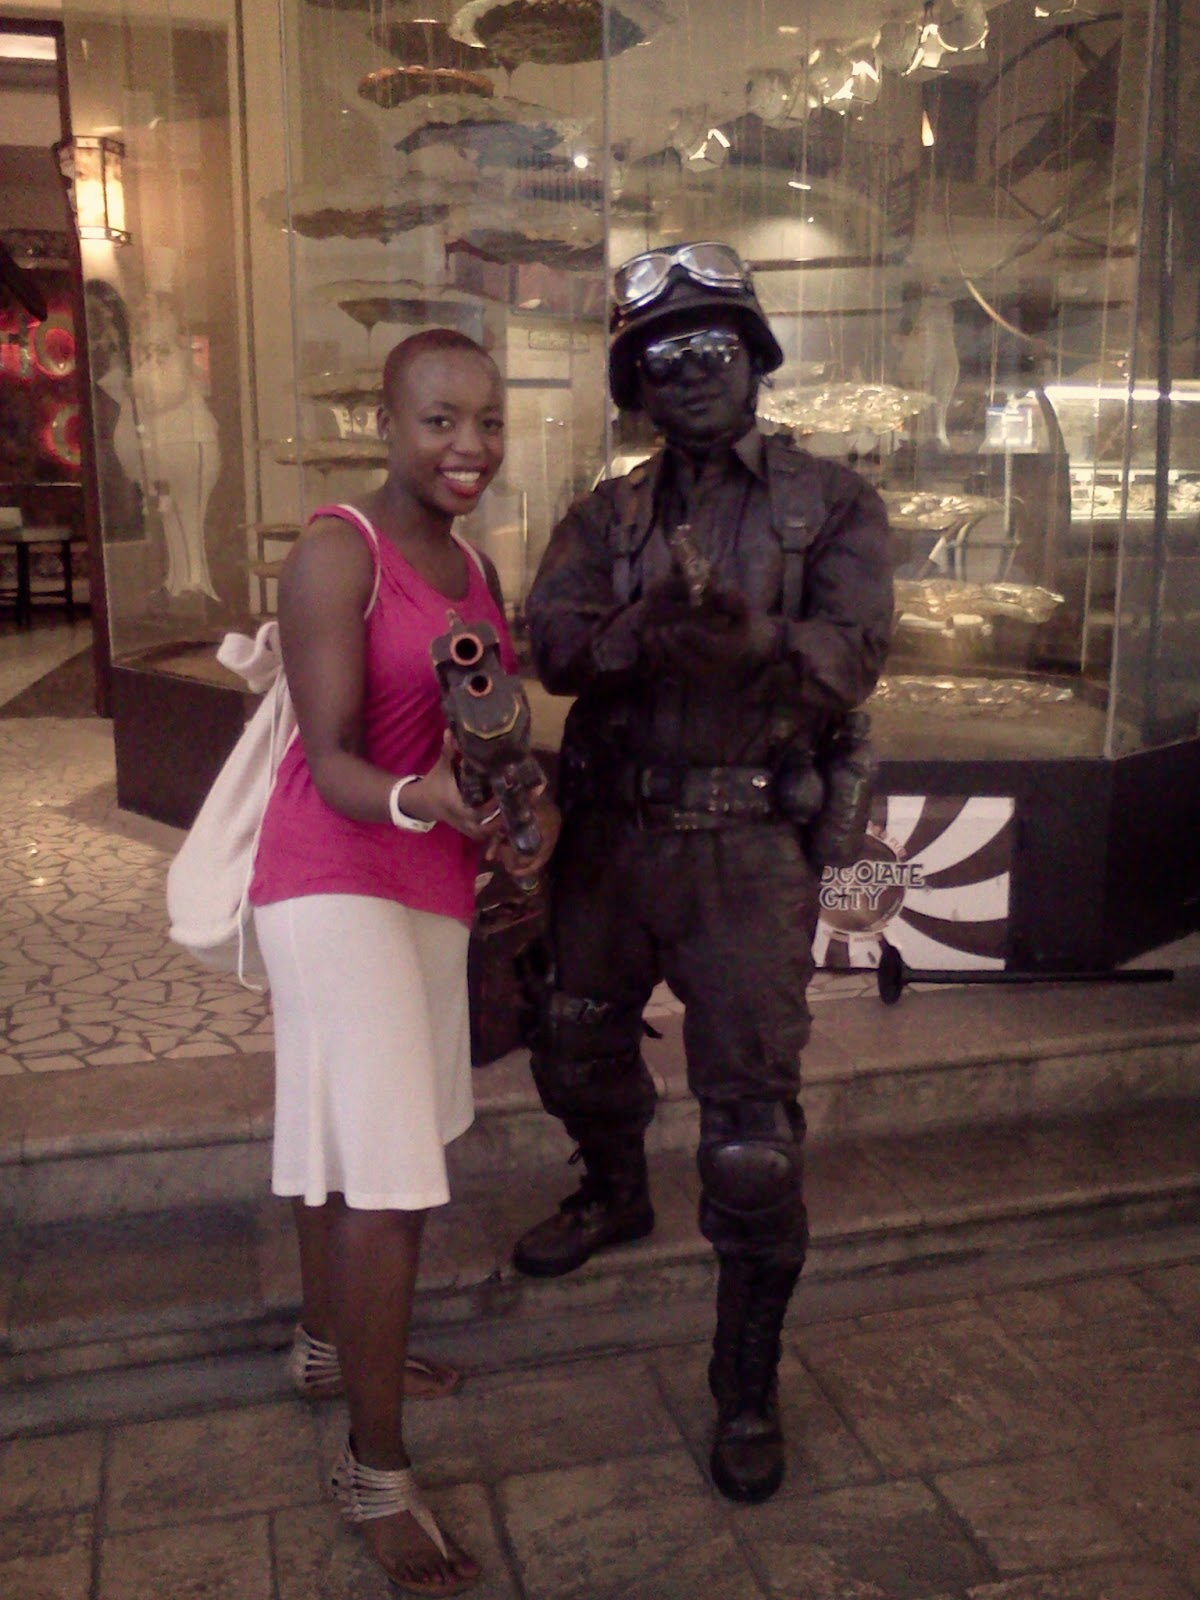 Dani with Chocolate City Solider